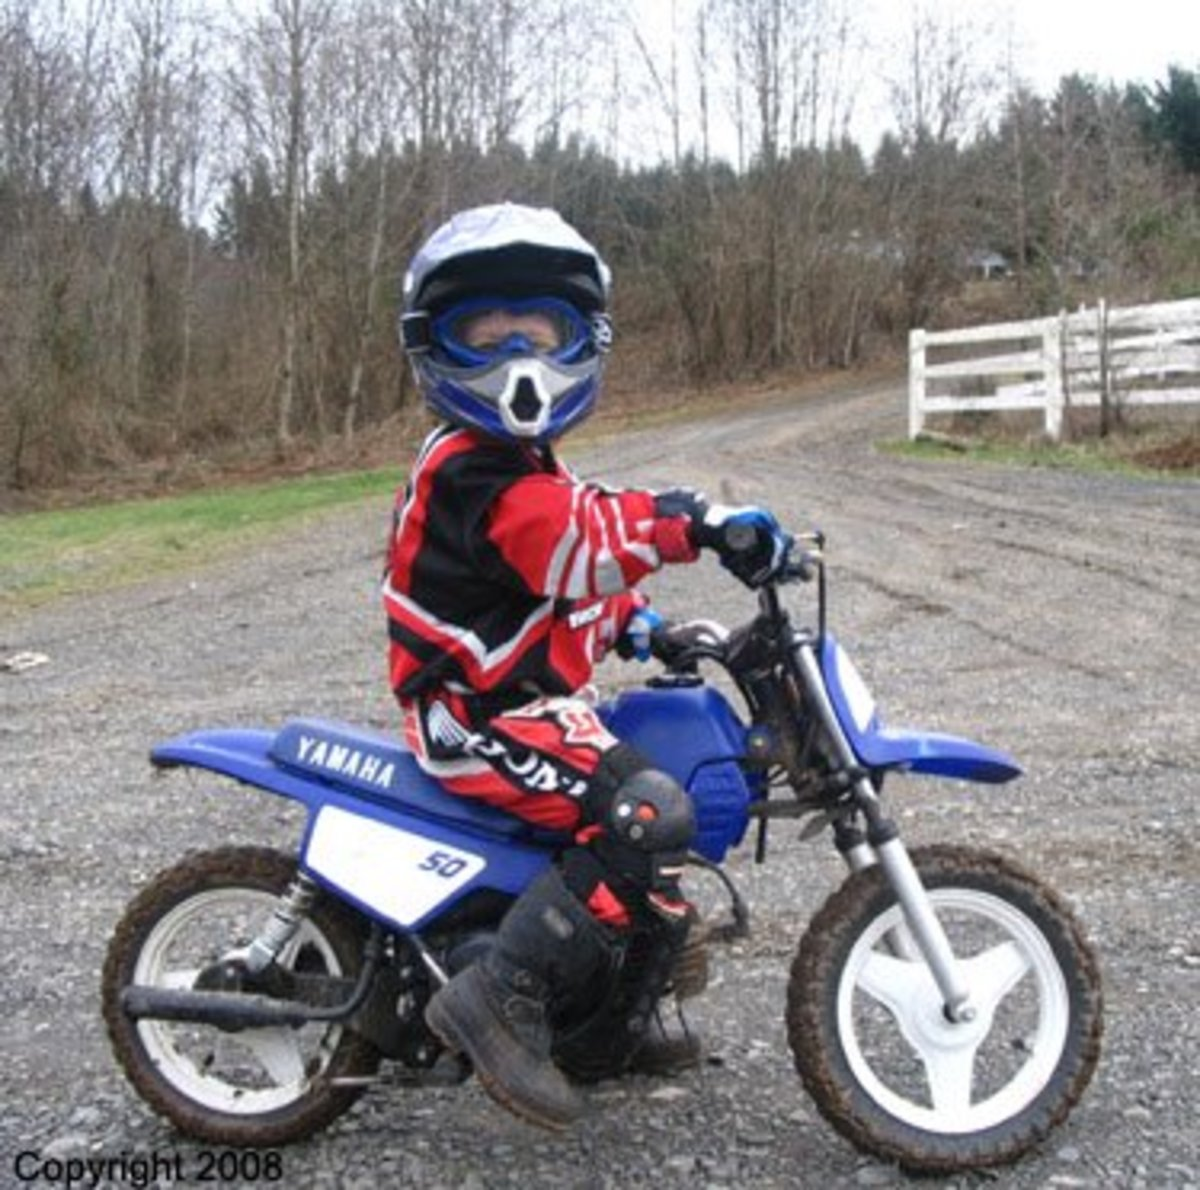 4 And 5 Year Olds On Dirt Bikes Year Old PW Rider